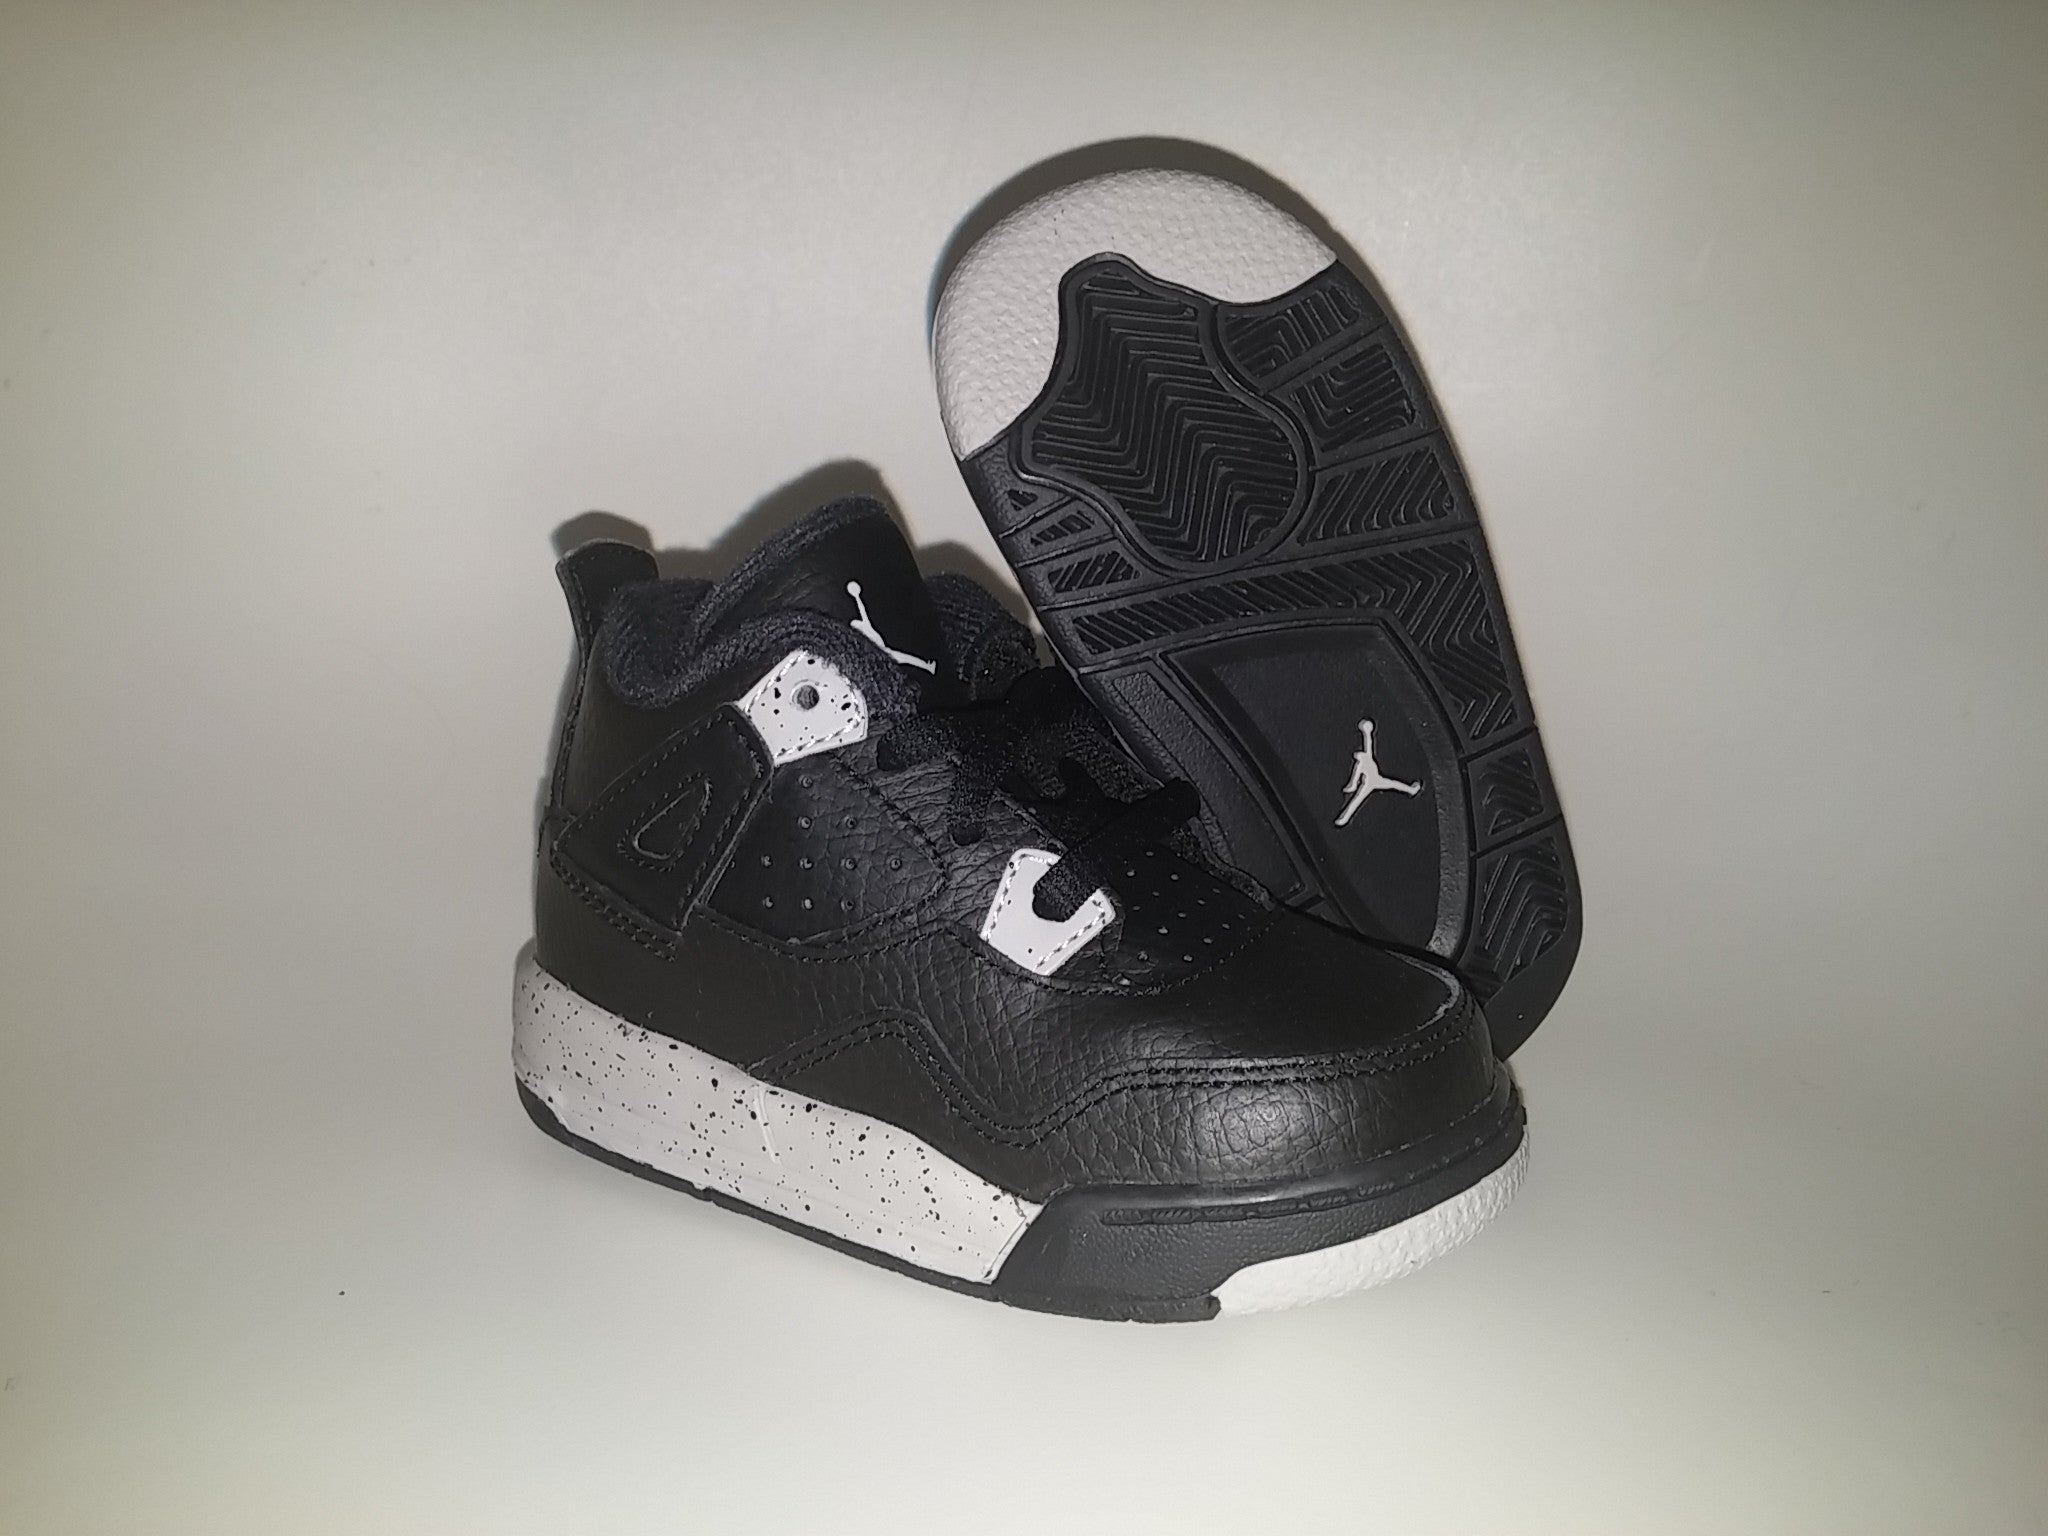 8abad1392fb044 NIKE AIR BABY JORDAN 4 RETRO BT TD OREO 707432-003 toddler – Superbored  Clothing Ltd.